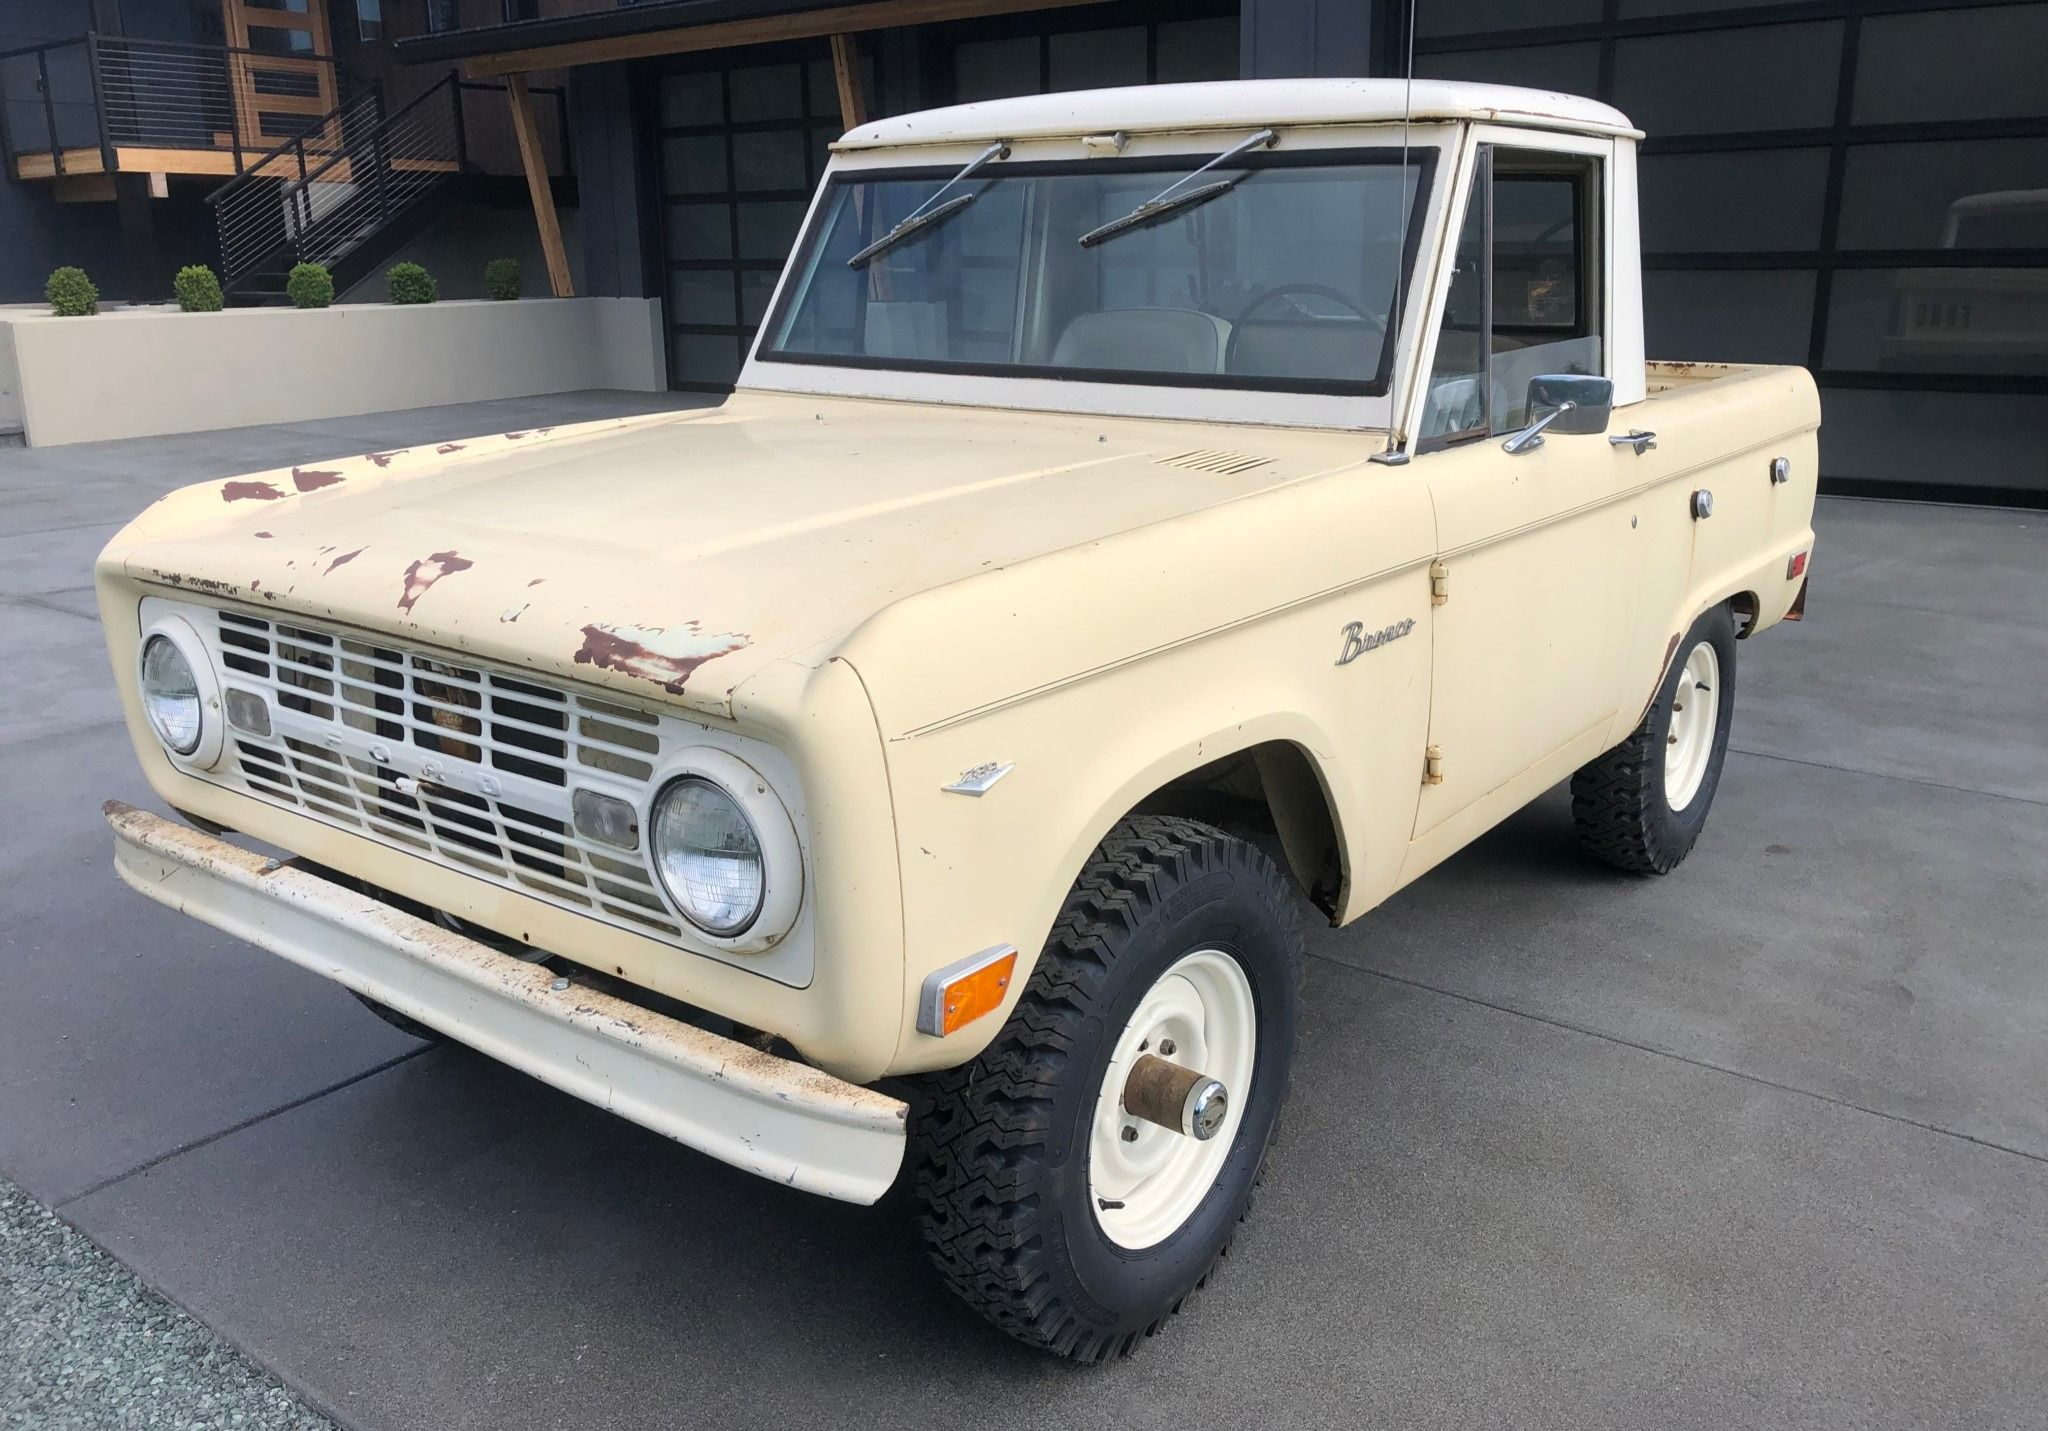 1968 Ford Bronco Pickup Ford Bronco Classic Ford Broncos Cars